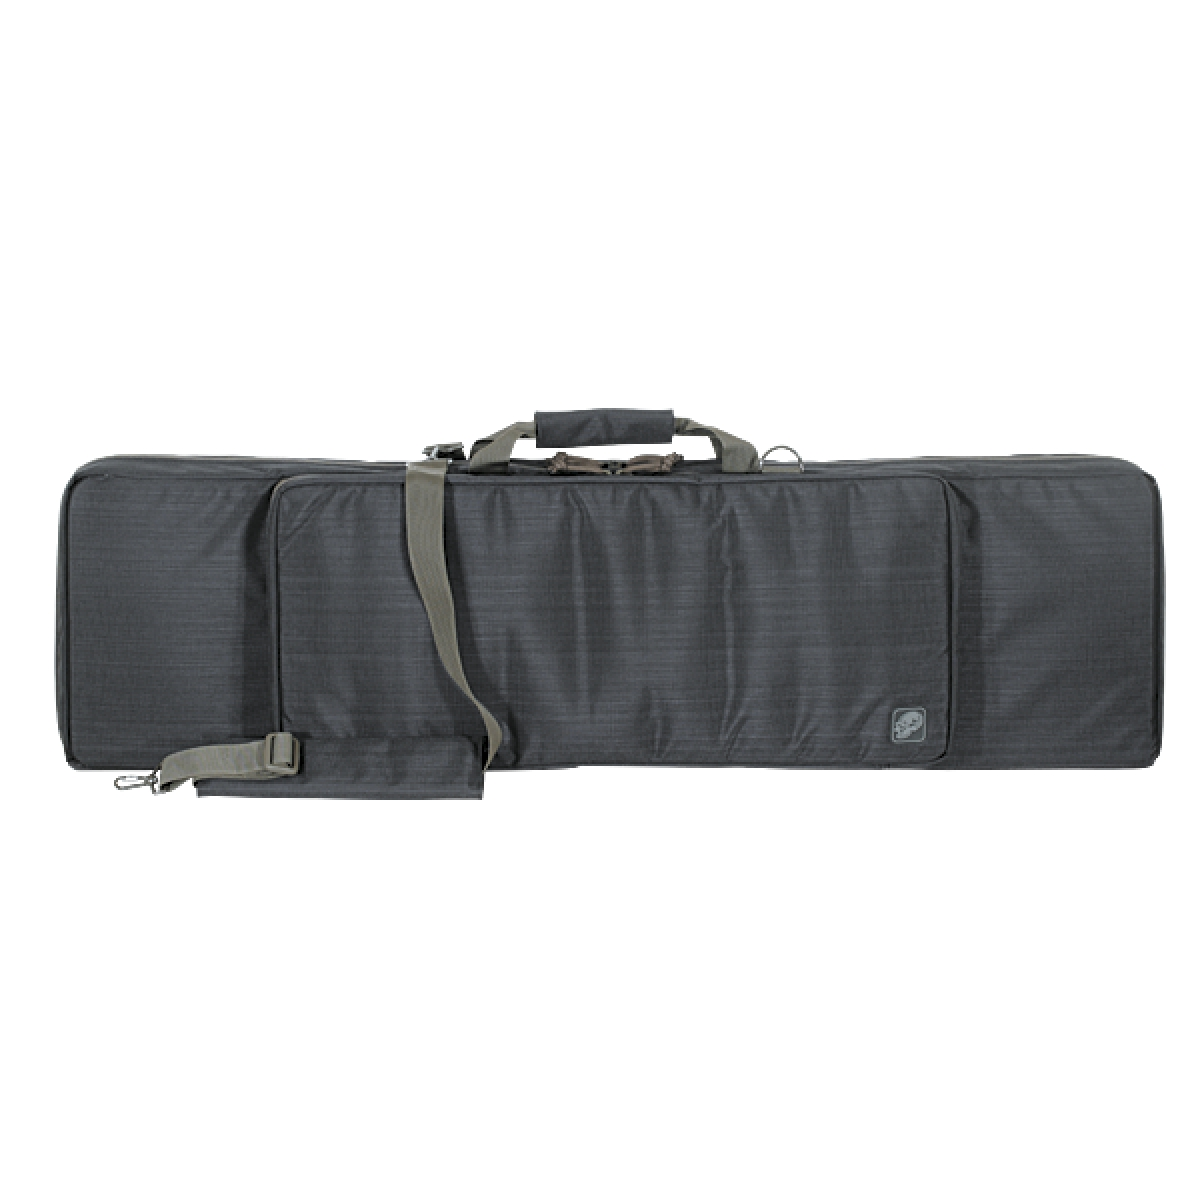 Voodoo Tactical 40-7612 Discreet 42-Inch Weapons Case, Black at Sears.com